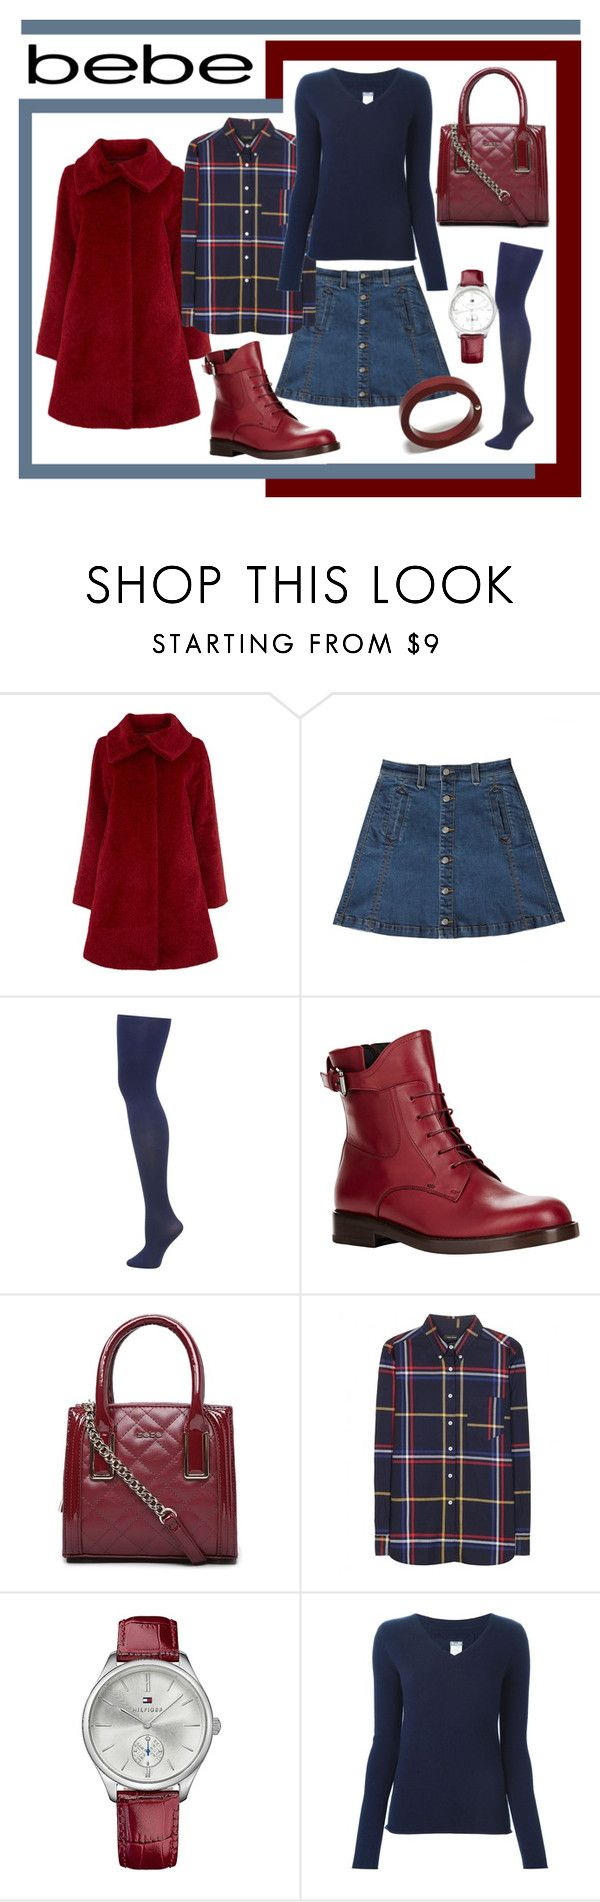 """""""Destination Runway with bebe : Contest Entry"""" by broomjockey on Polyvore featuring Bebe, MaxMara, M&Co, Lanvin, Isabel Marant, Tommy Hilfiger, KristenseN du Nord, Lizzie Fortunato and beiconic"""